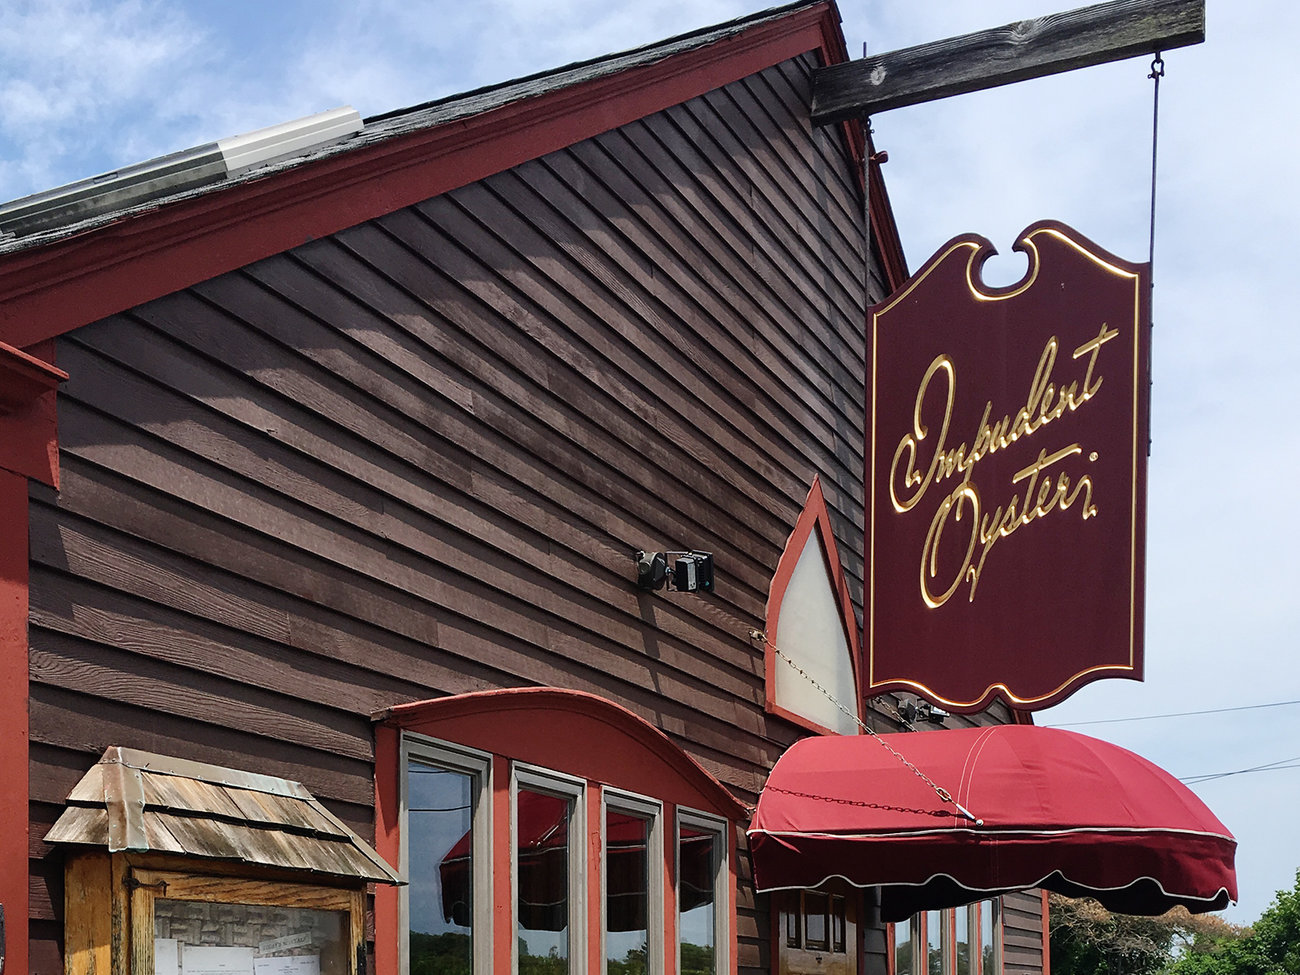 Impudent Oyster Restaurant in Cape Cod